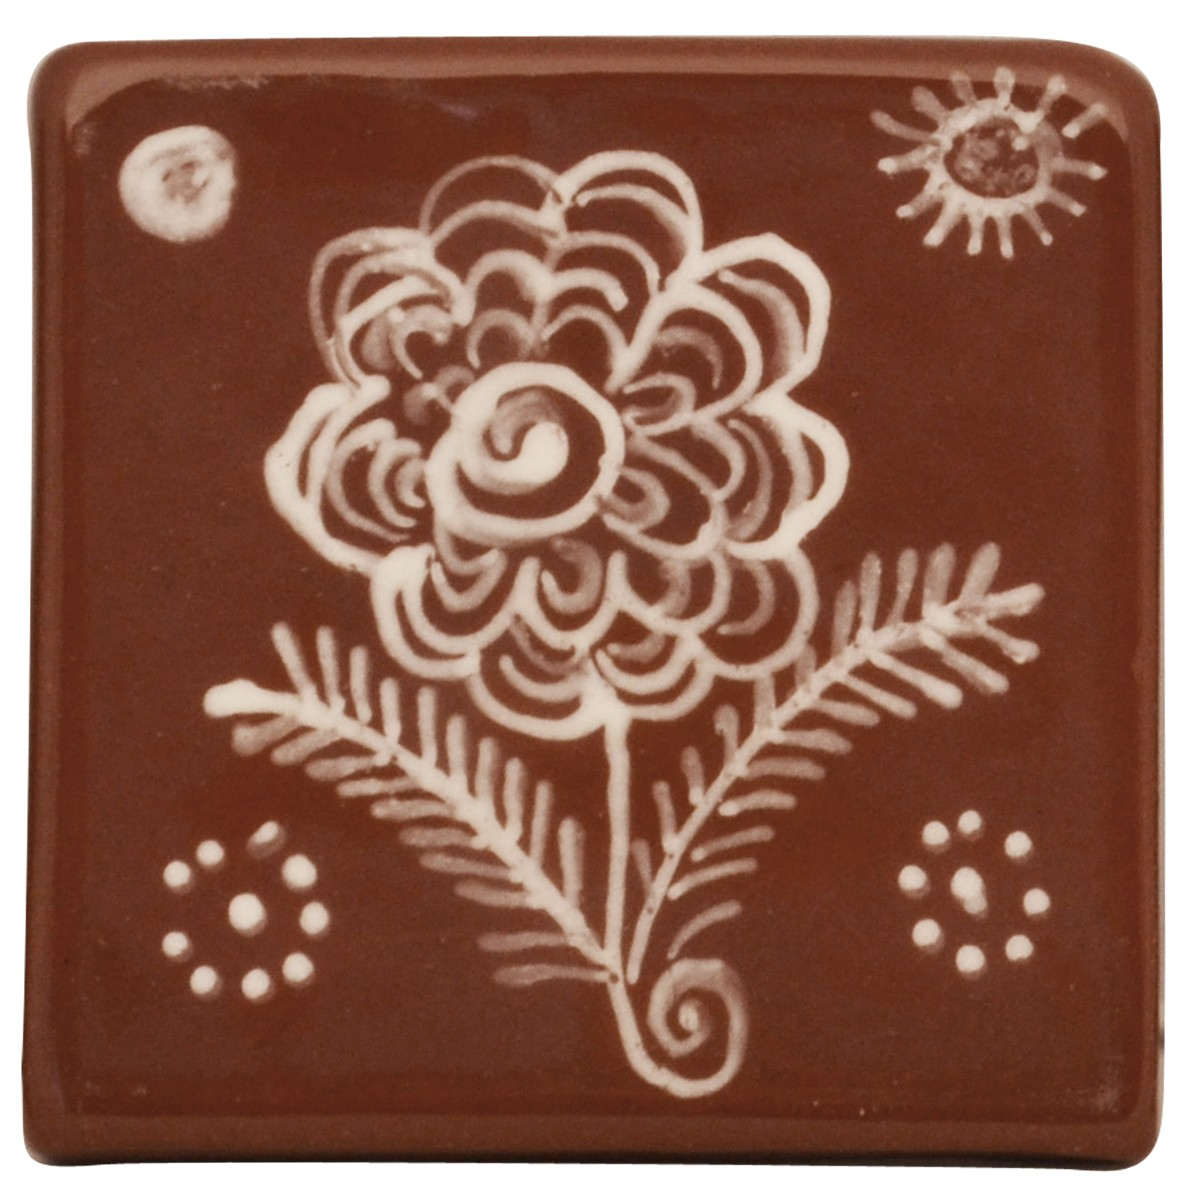 White Flower, Handpainted Ceramic Tile or Coaster